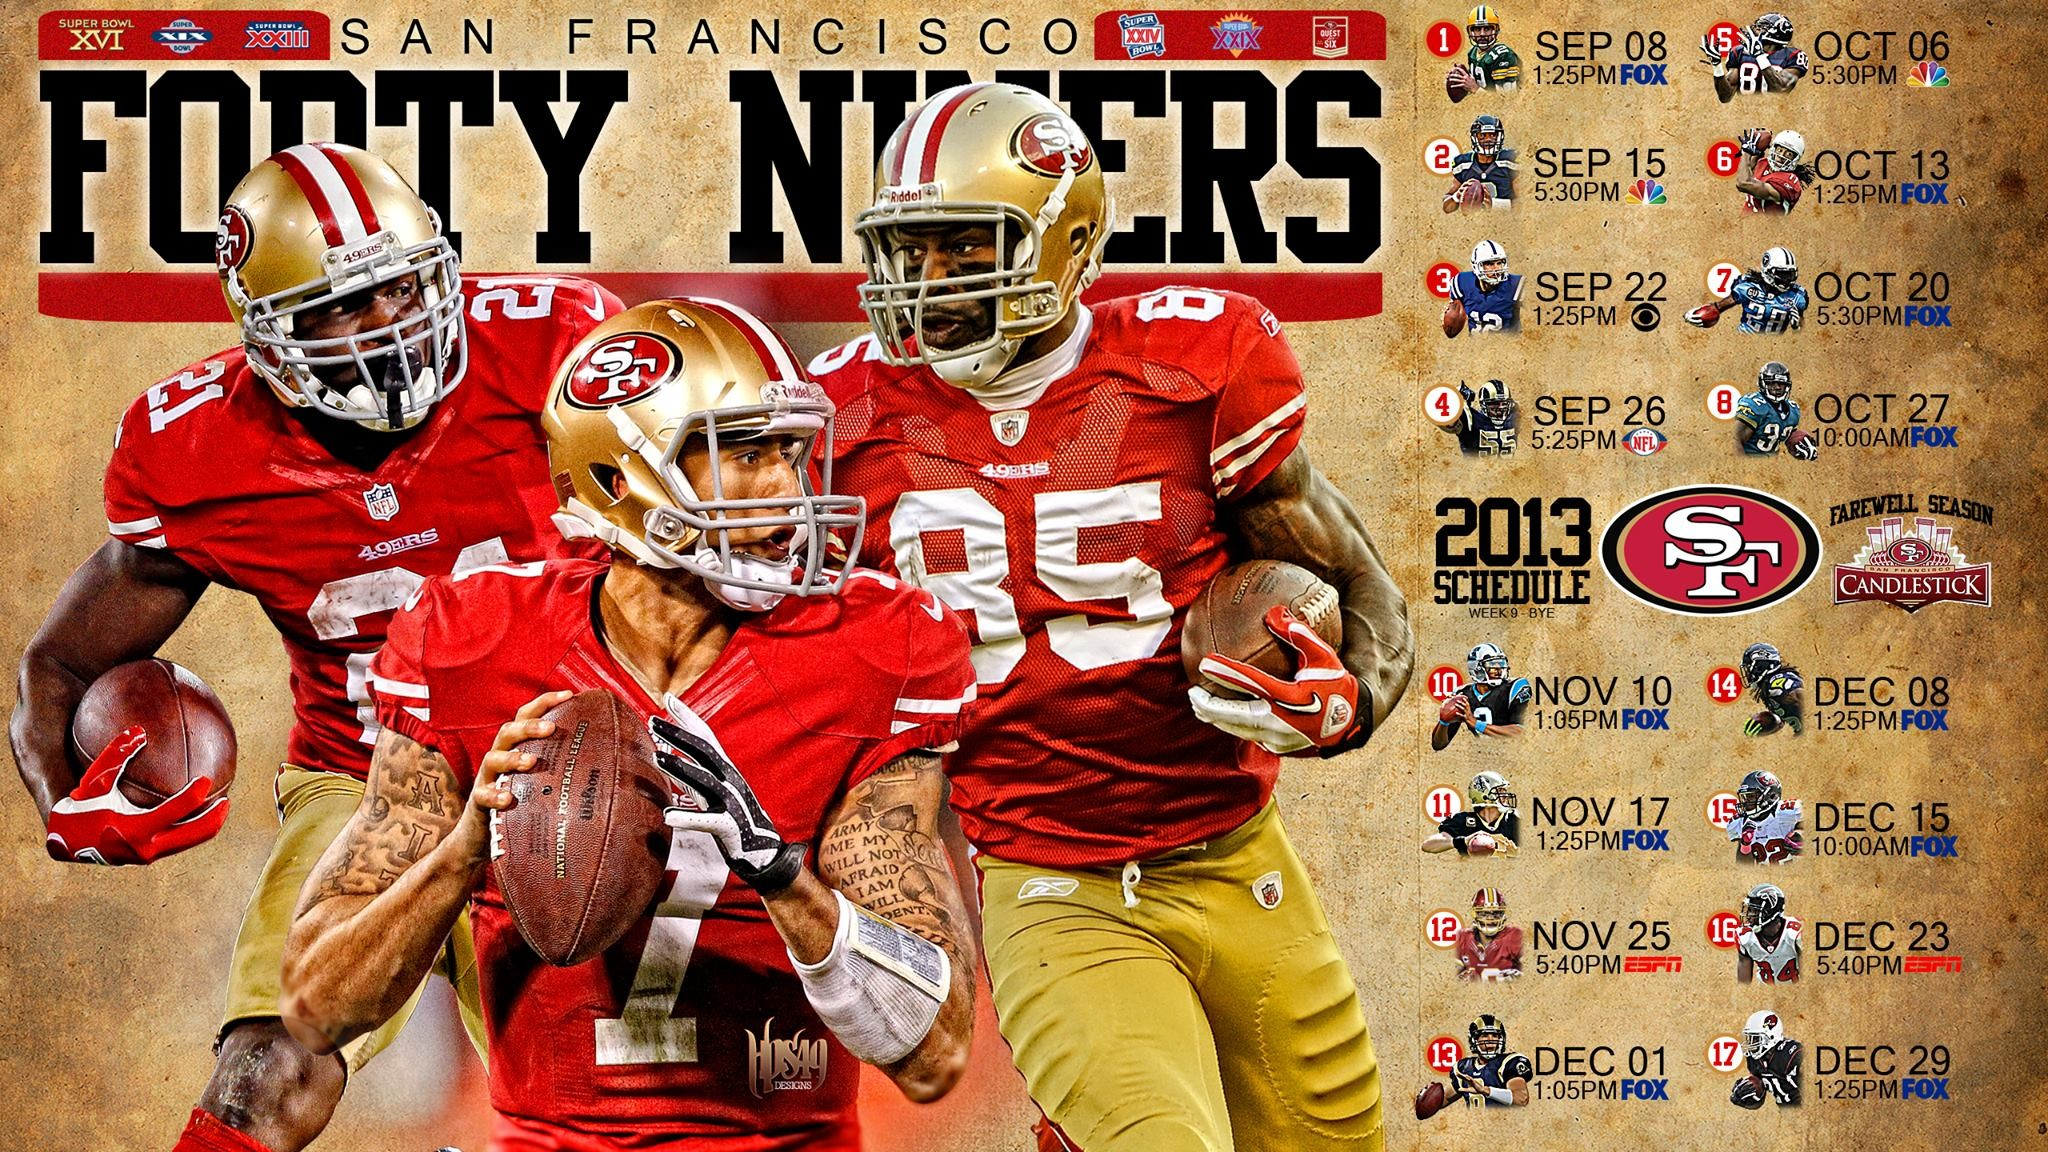 San francisco 49ers wallpaper 2018 51 pictures 1920x1080 40 niner wallpaper 49ers san francisco voltagebd Choice Image